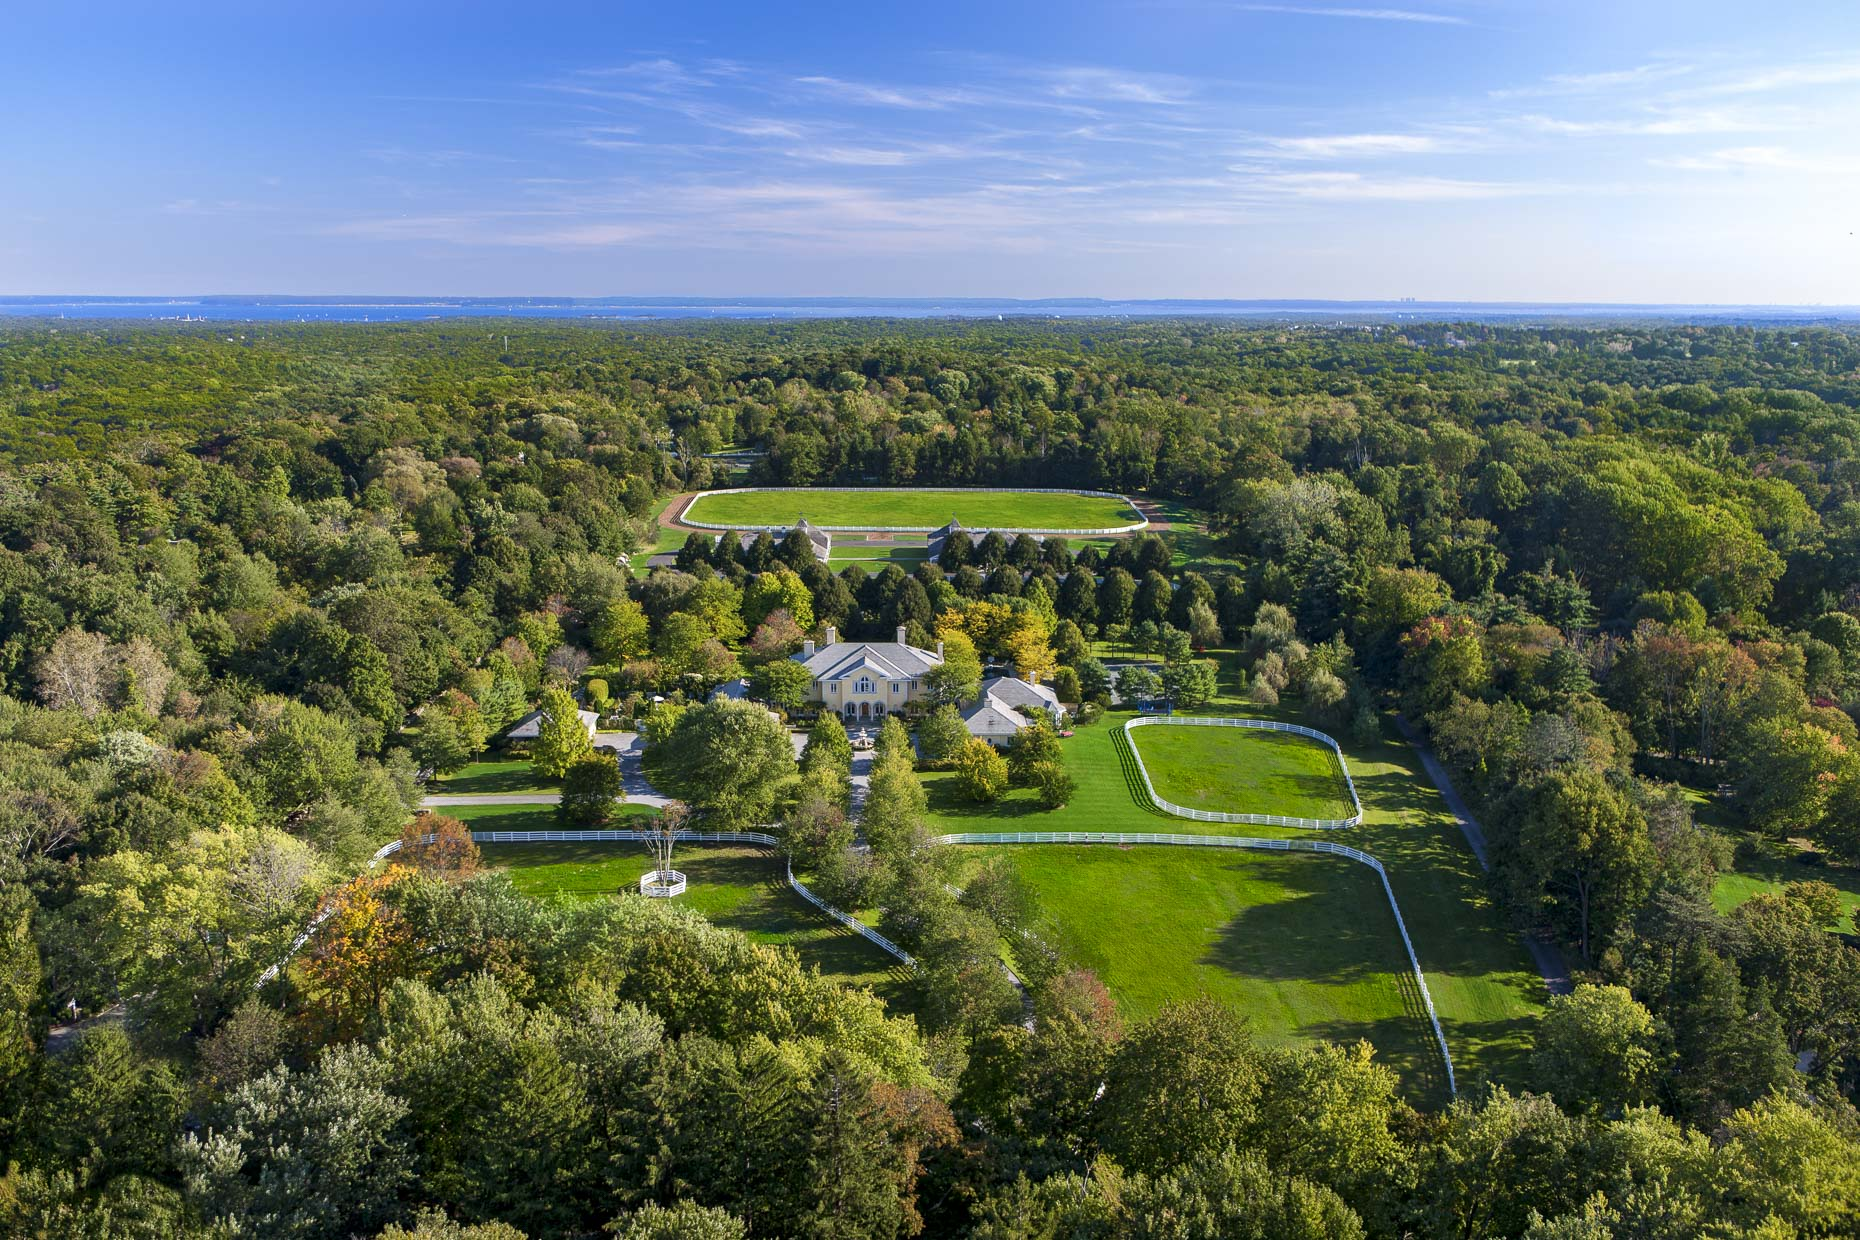 Equestrian Estates of Greenwich Connecticut | Aerial photography by Stefen Turner